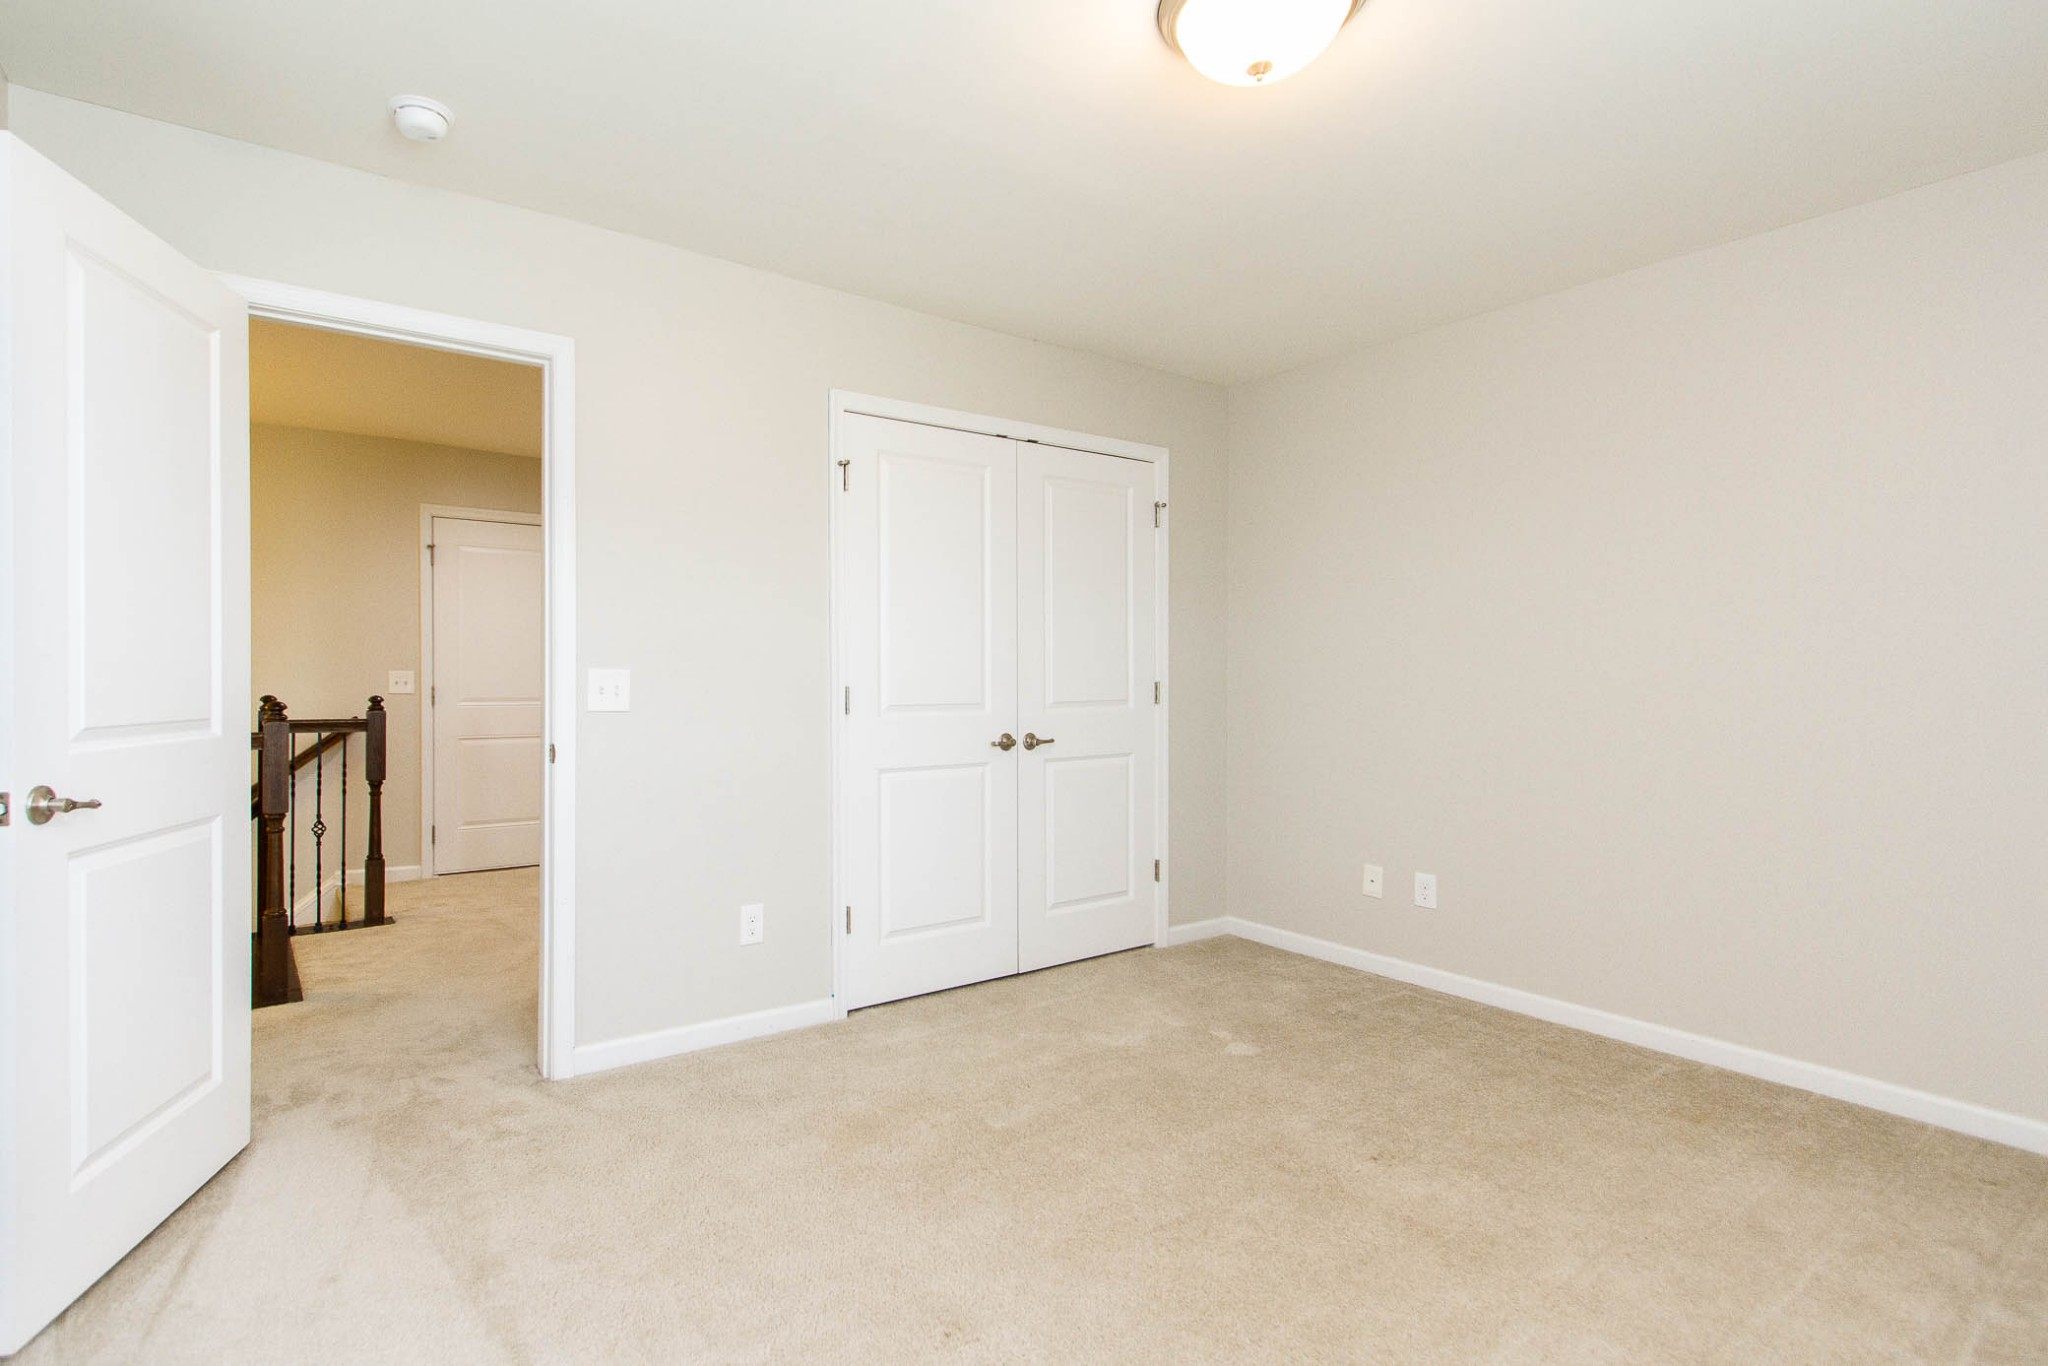 1031 New Eanes Dr Property Photo 33